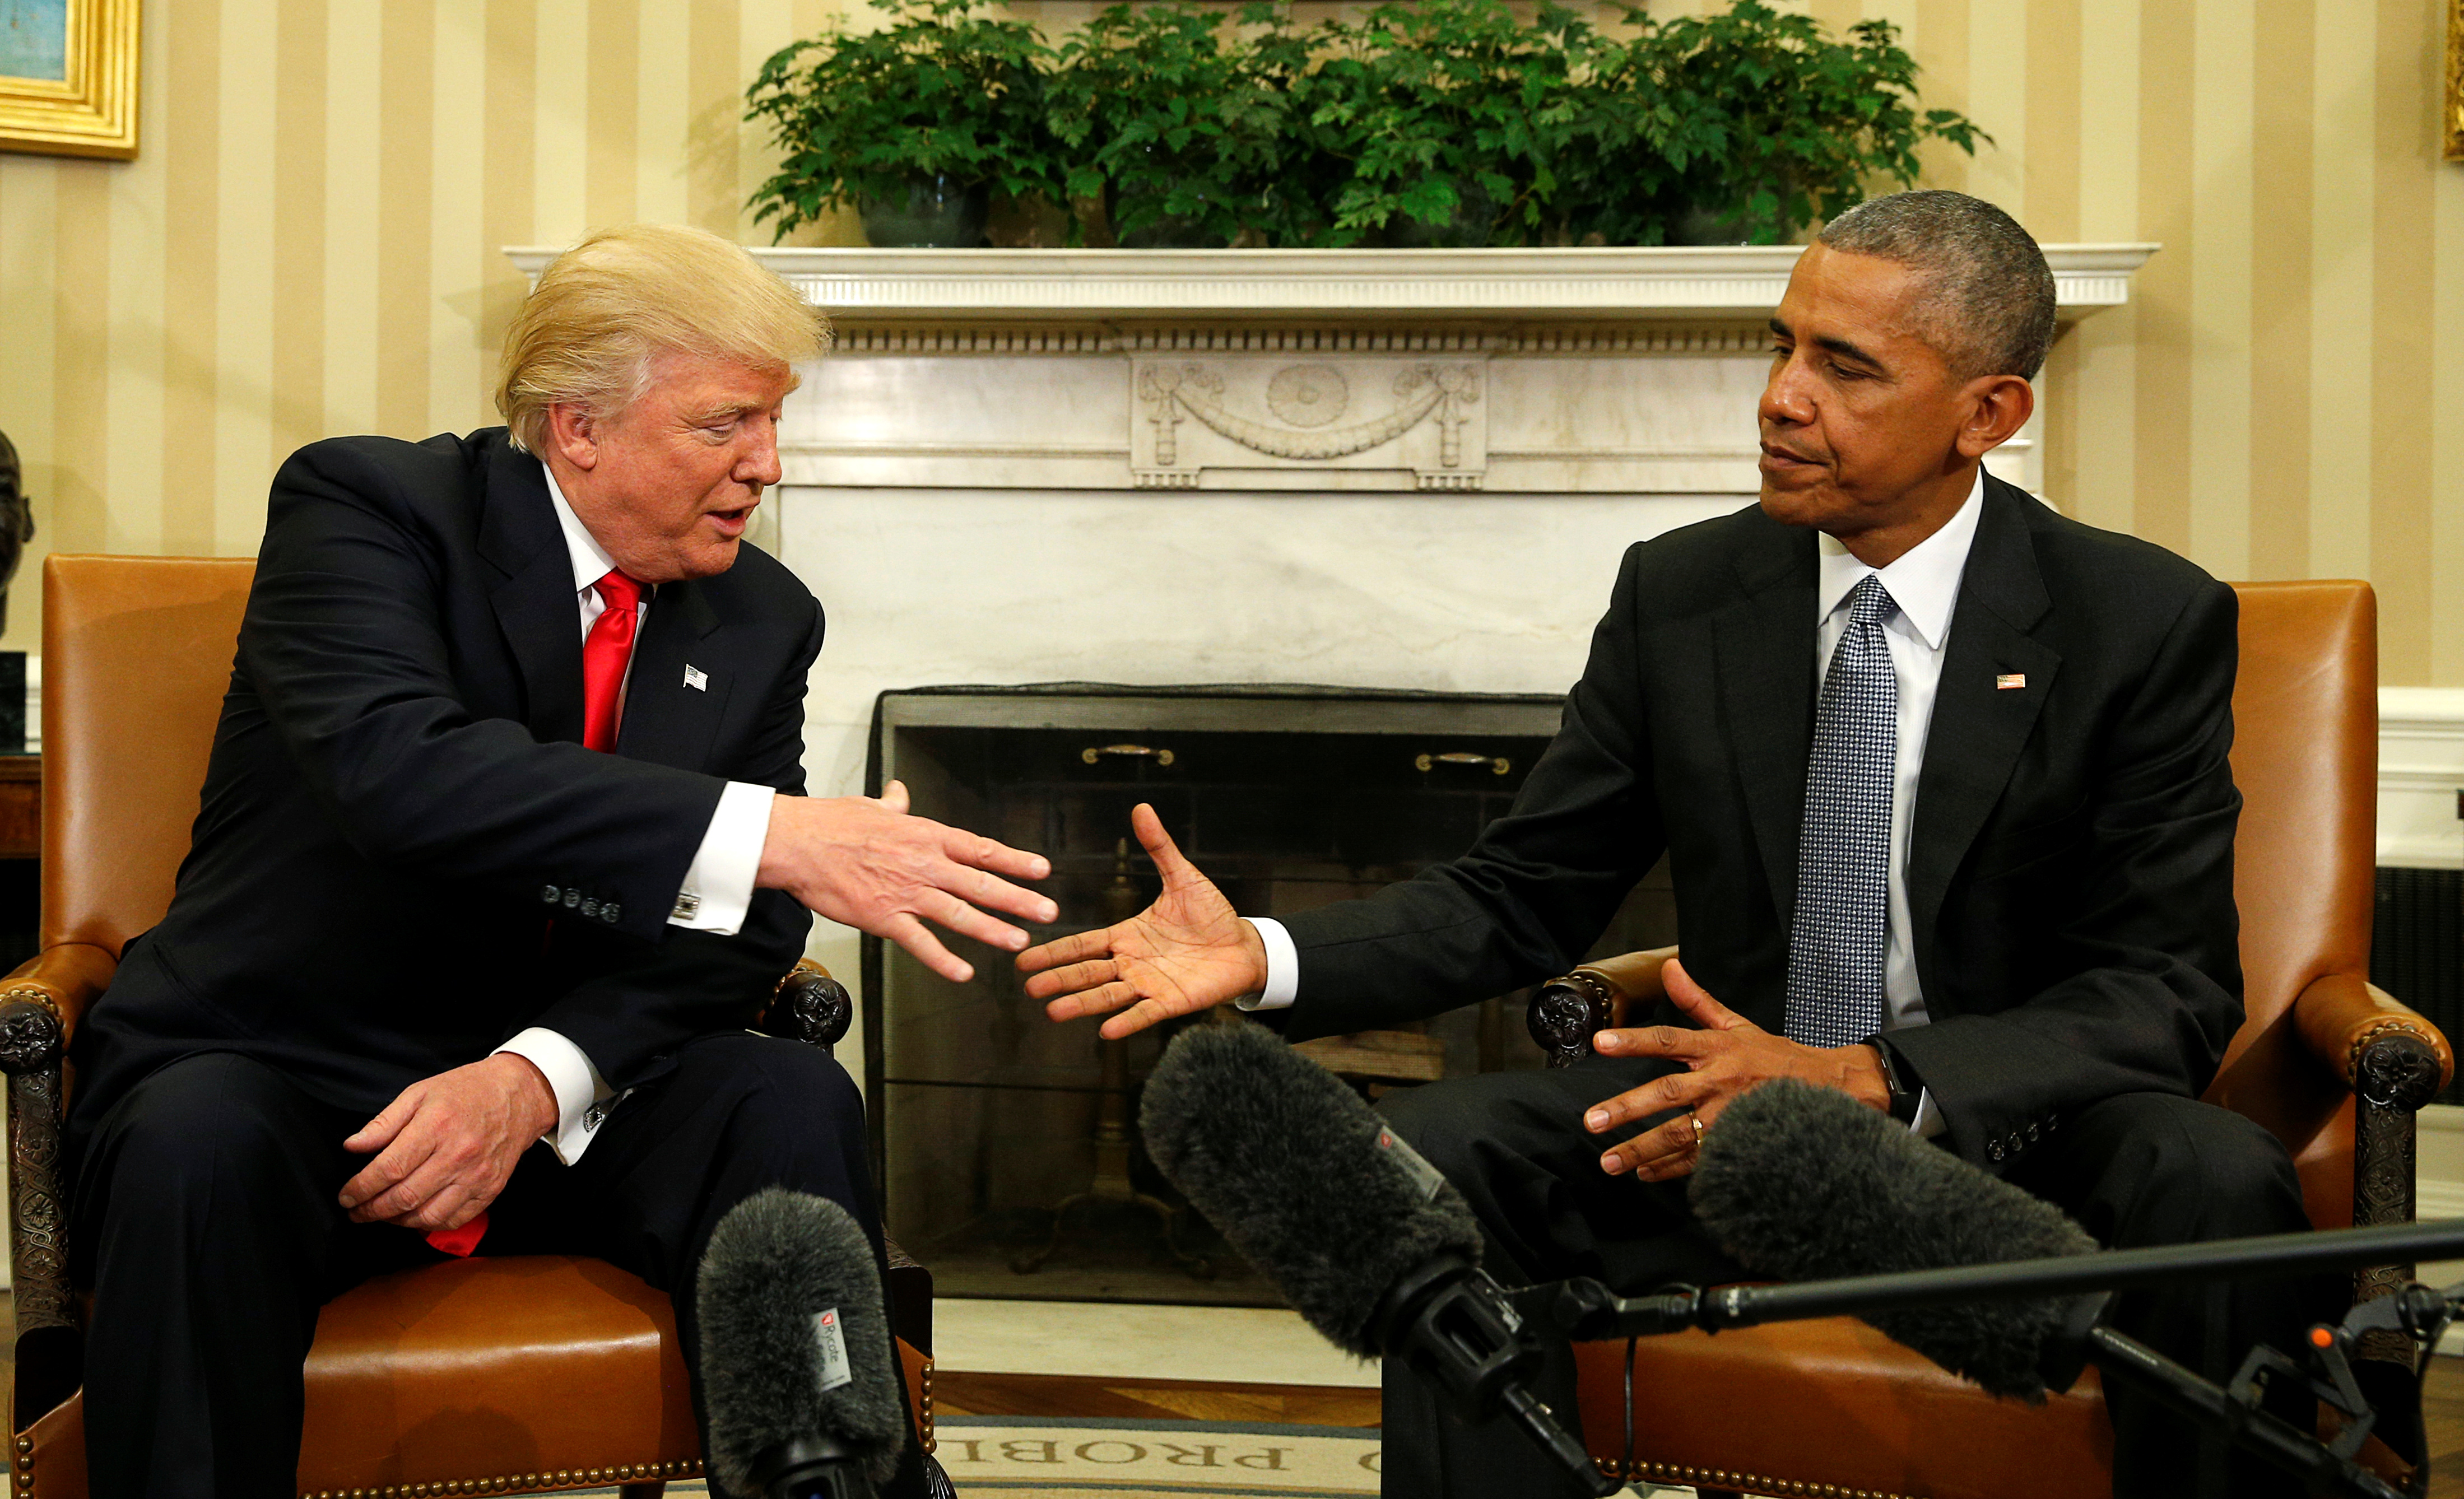 U.S. President Barack Obama meets with President-elect Donald Trump in the Oval Office of the White House in Washington November 10, 2016.